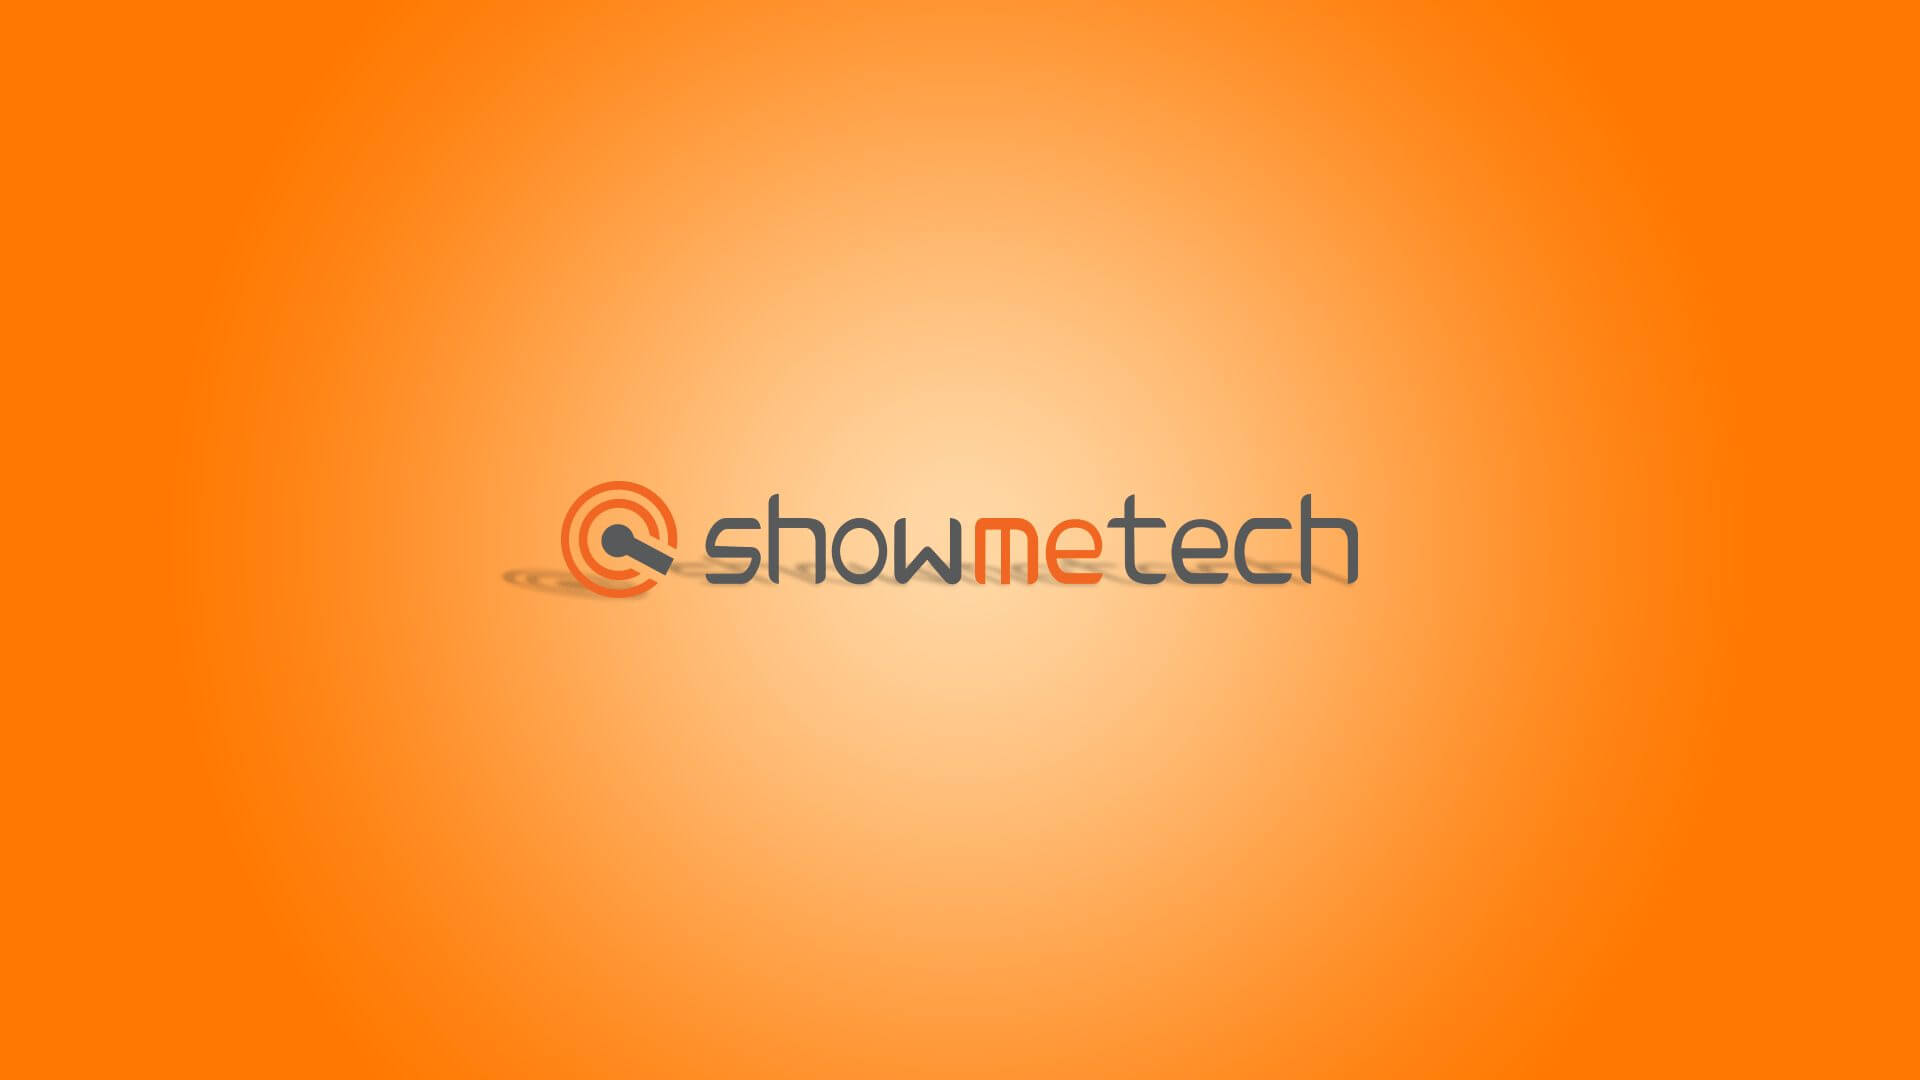 wallpaper showmetech degrade laranja - Anuncie